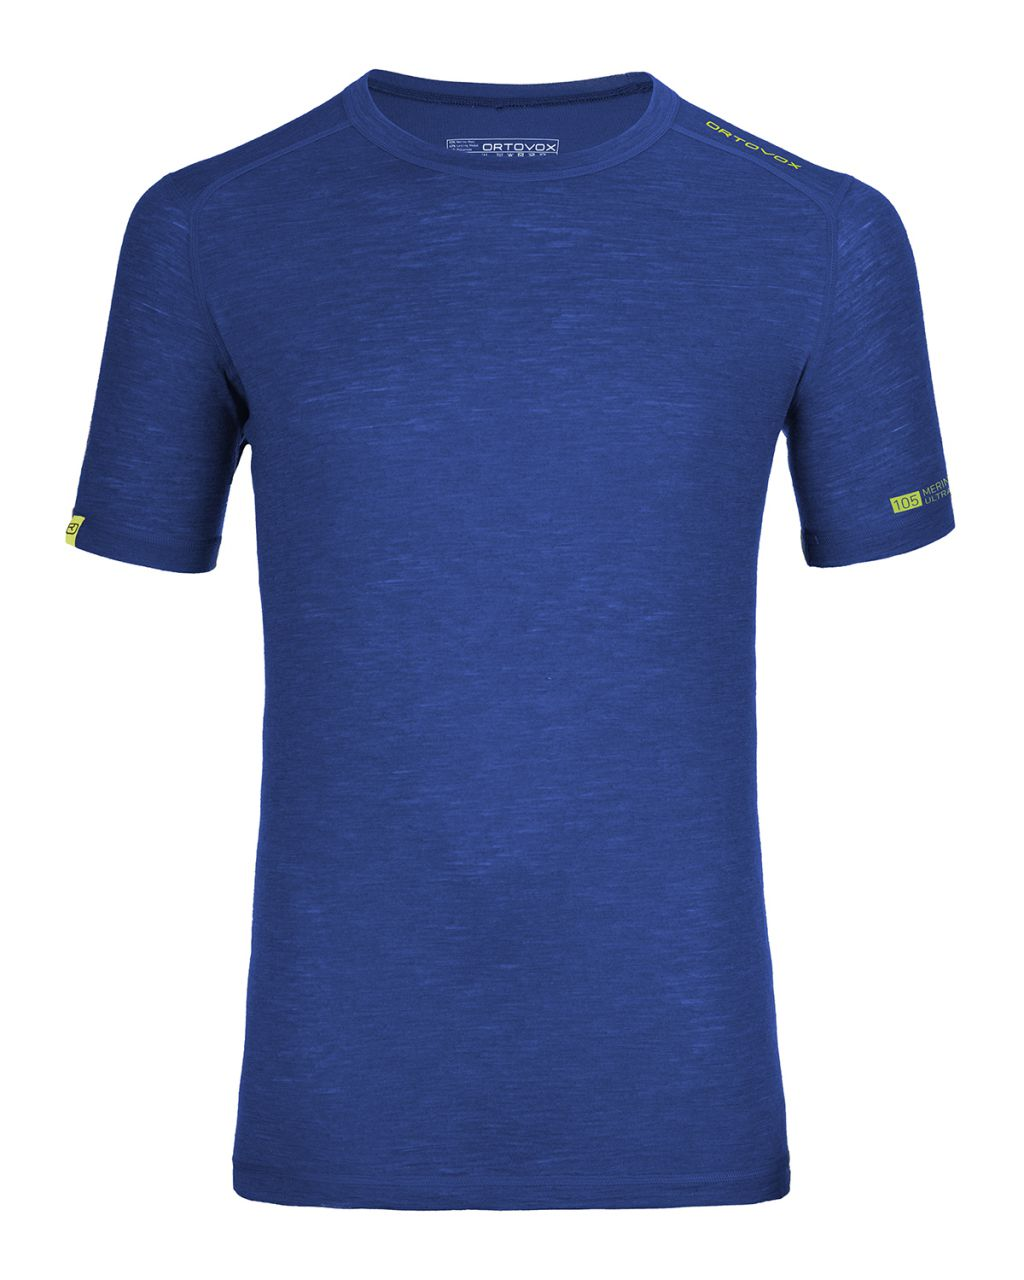 Ortovox Merino 105 Ultra Short Sleeve strong blue XL